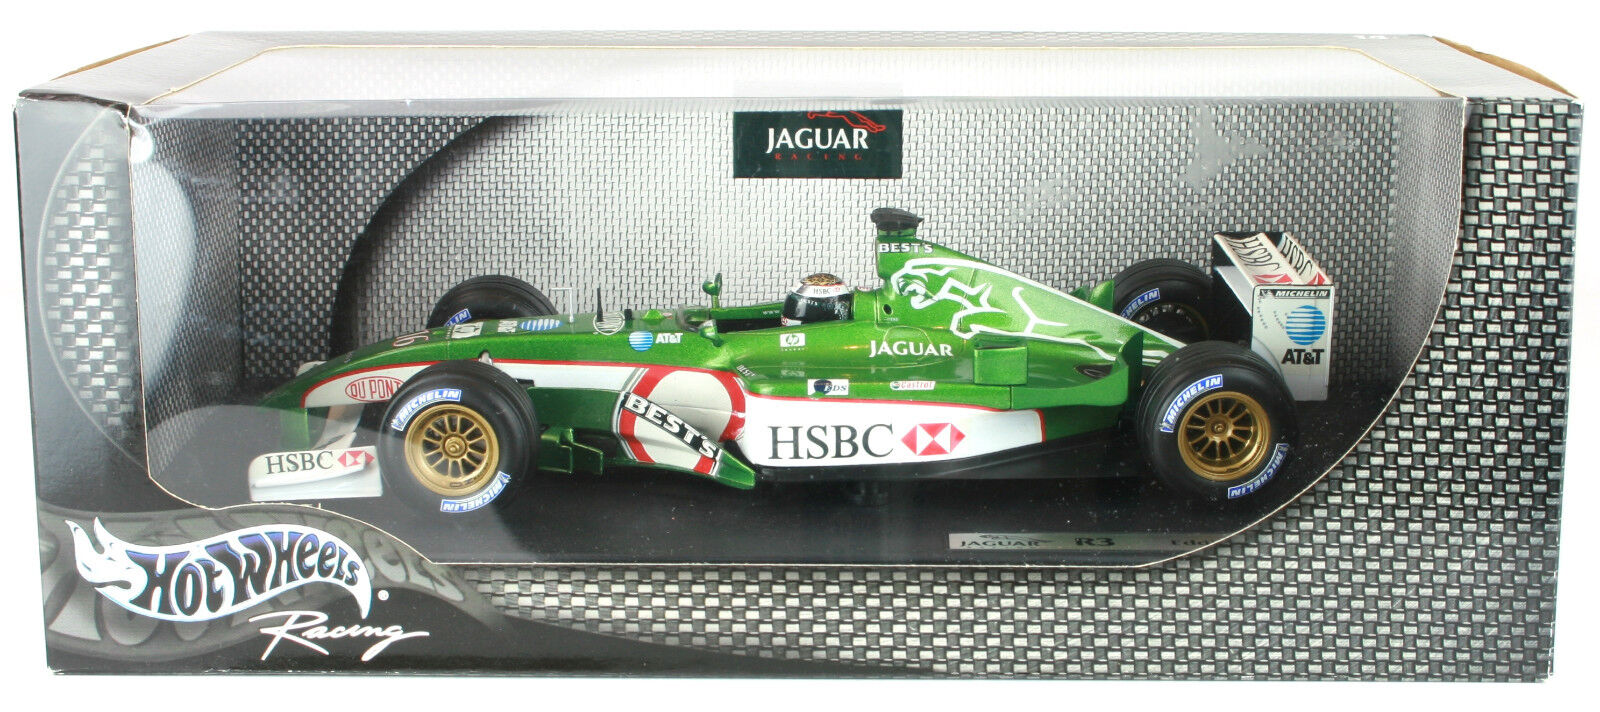 EDDIE IRVINE JAGUAR R3 2002 HOT WHEELS 1 18th F1 scale model voiture